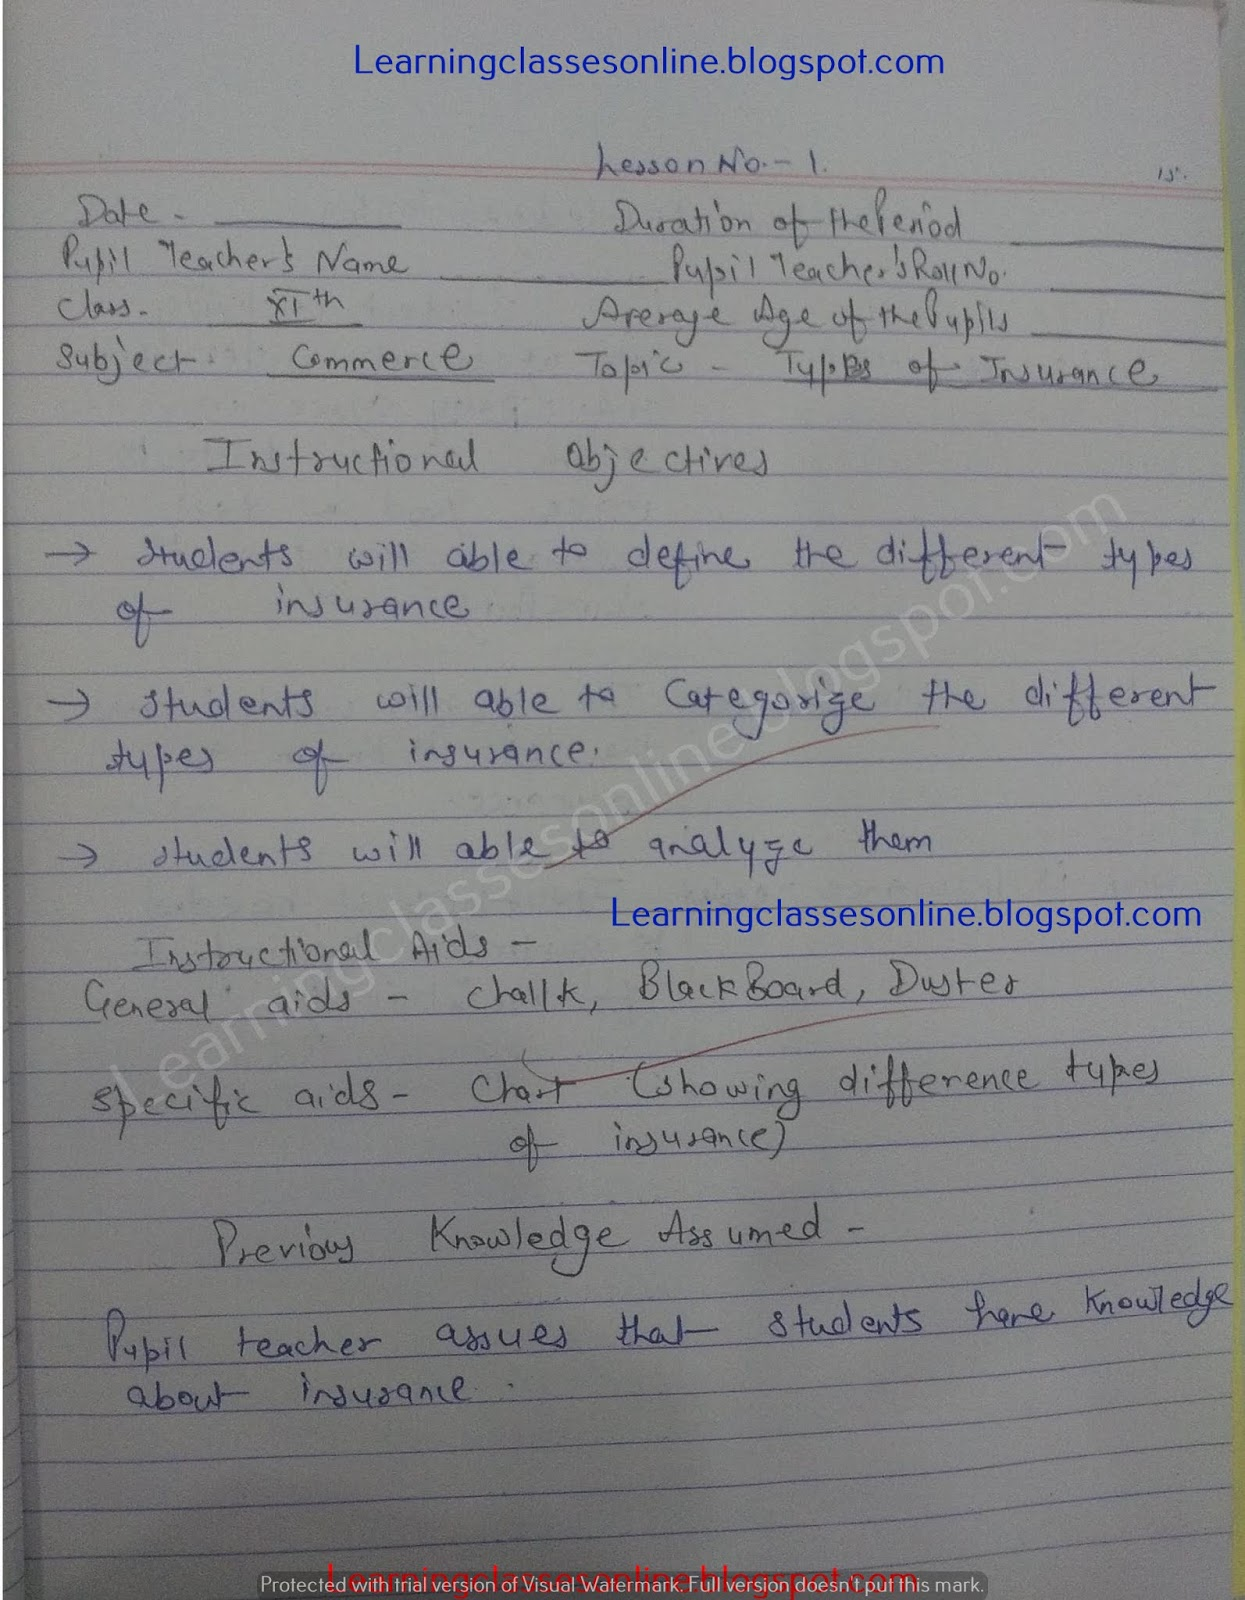 crsu, mdu, kuk cdlu b.ed ded deled btc commerce and business studies lesson plan in hindi for cbse, ncert school tachers